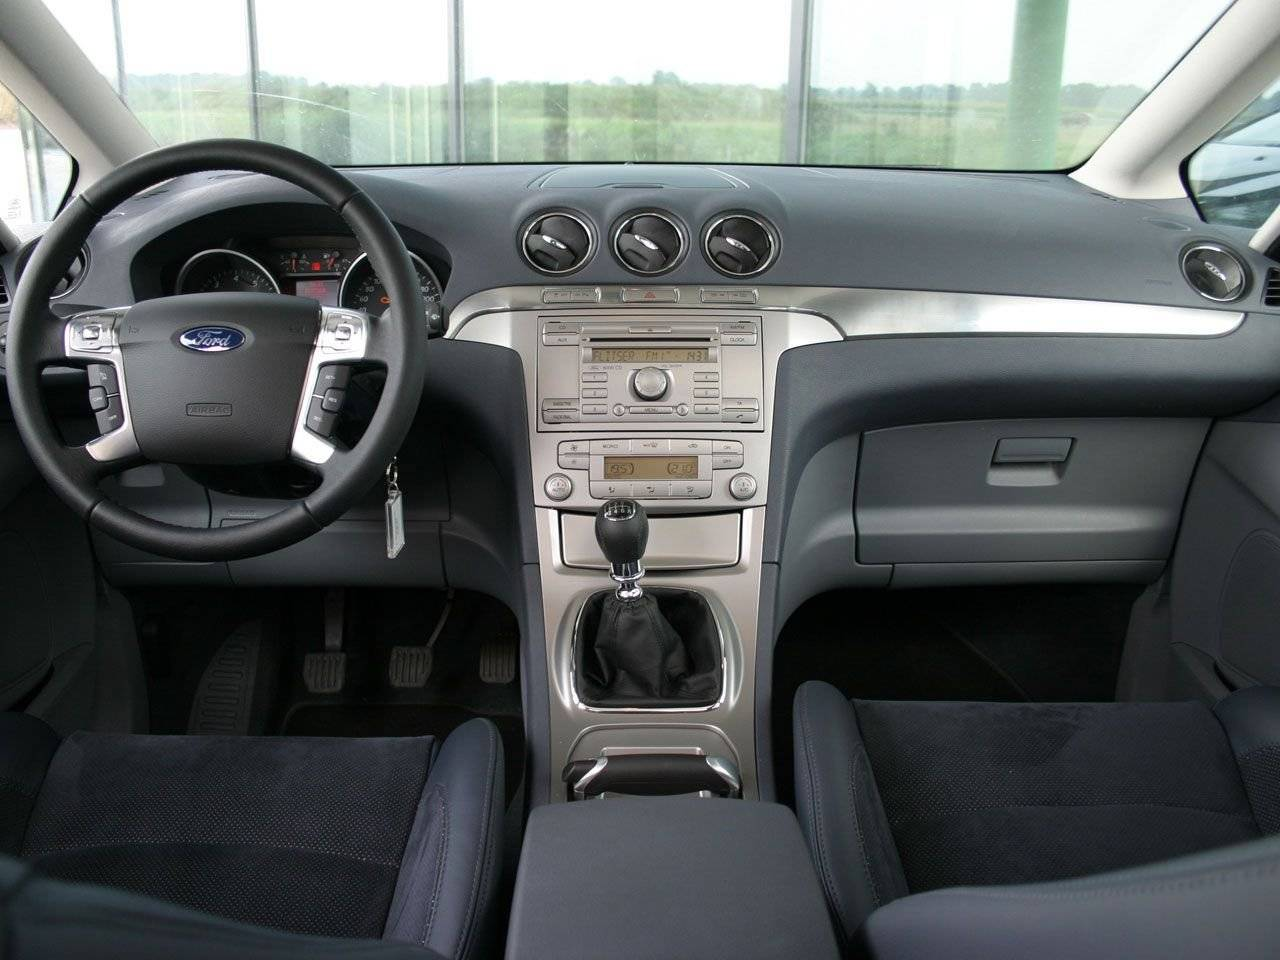 Test mpv met sportkarakter ford s max autotests for Ford s max photos interieur